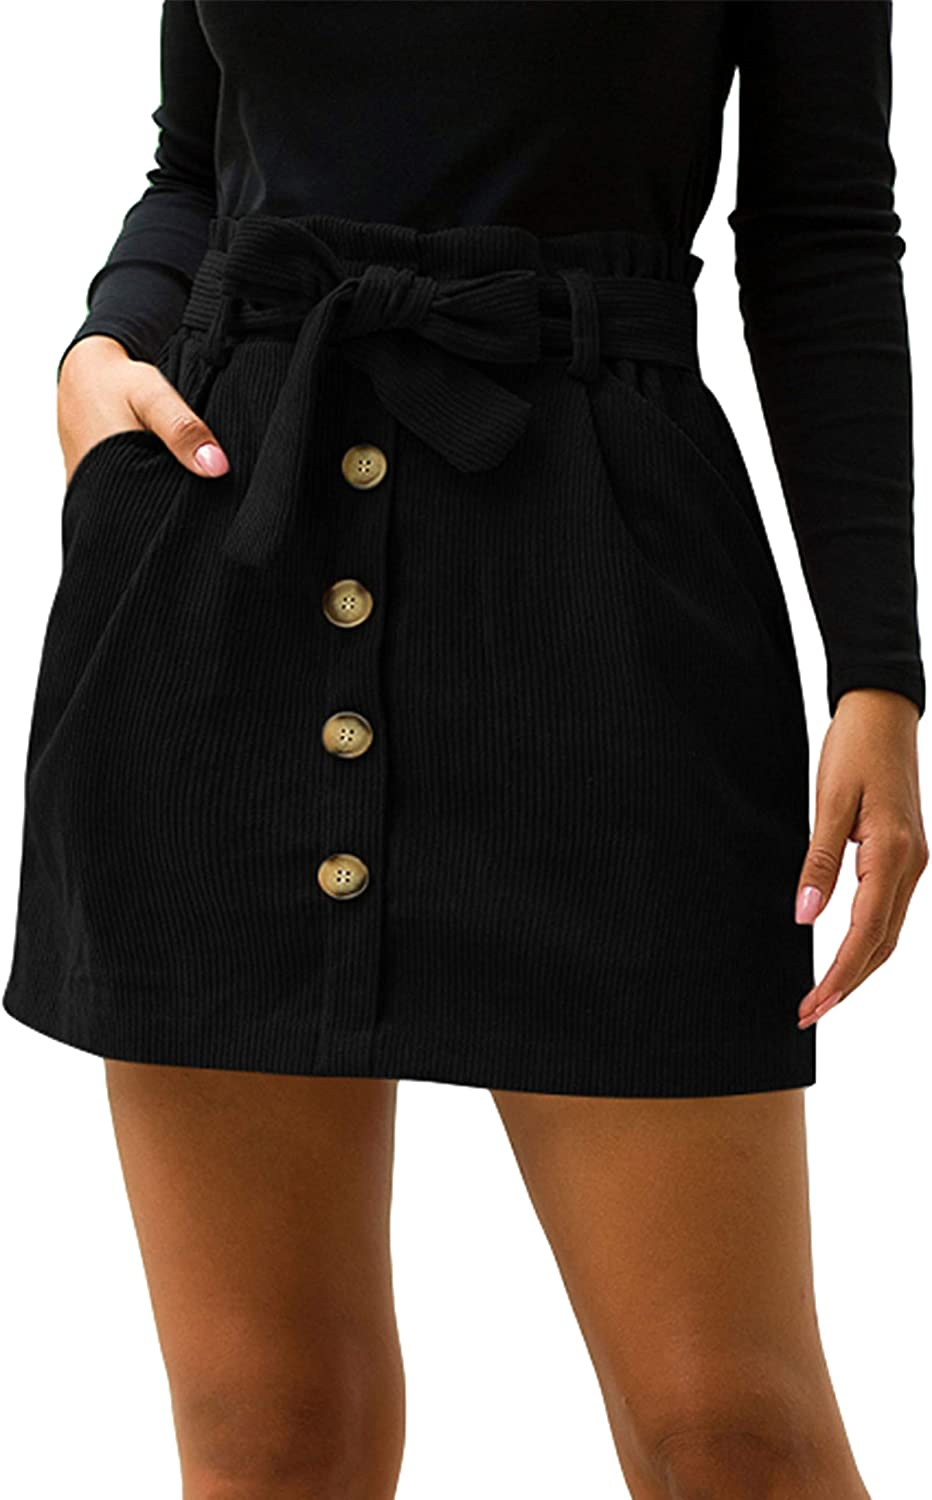 Himosyber Women's Casual Corduroy High Waist Button Trim Front Belted Mini Skirt